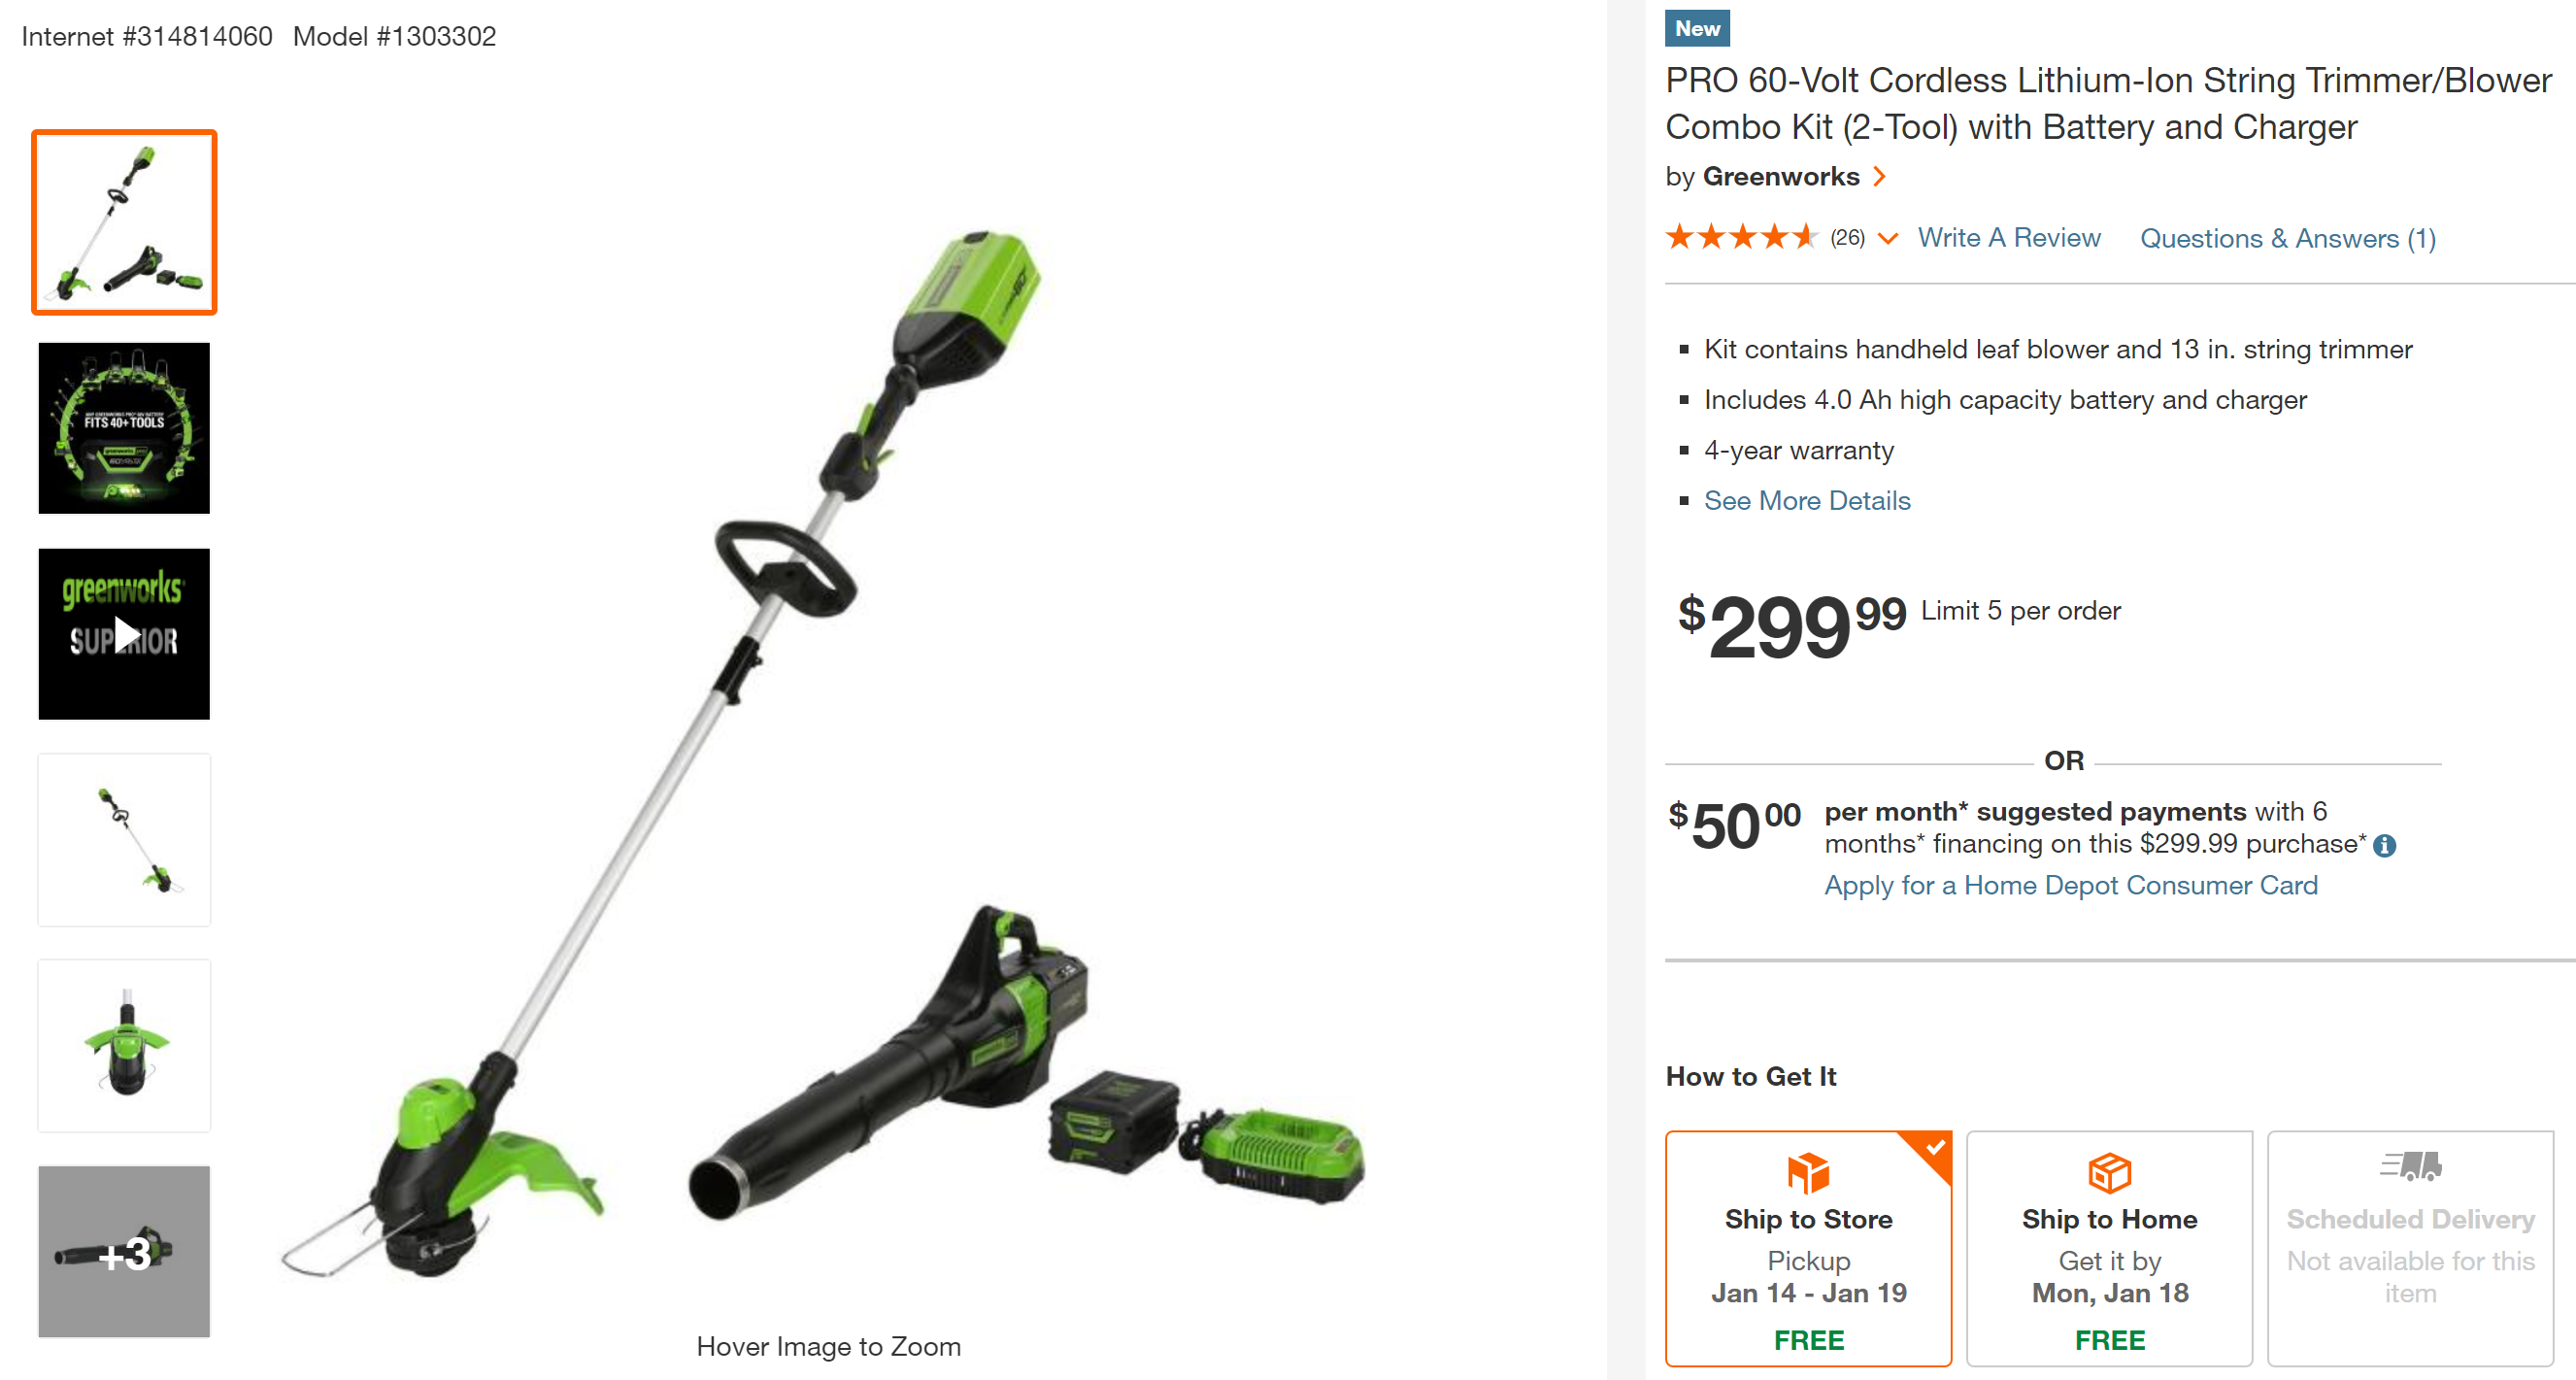 2021-01-05 11_41_40-Greenworks PRO 60-Volt Cordless Lithium-Ion String Trimmer_Blower Combo Kit (2-T.png